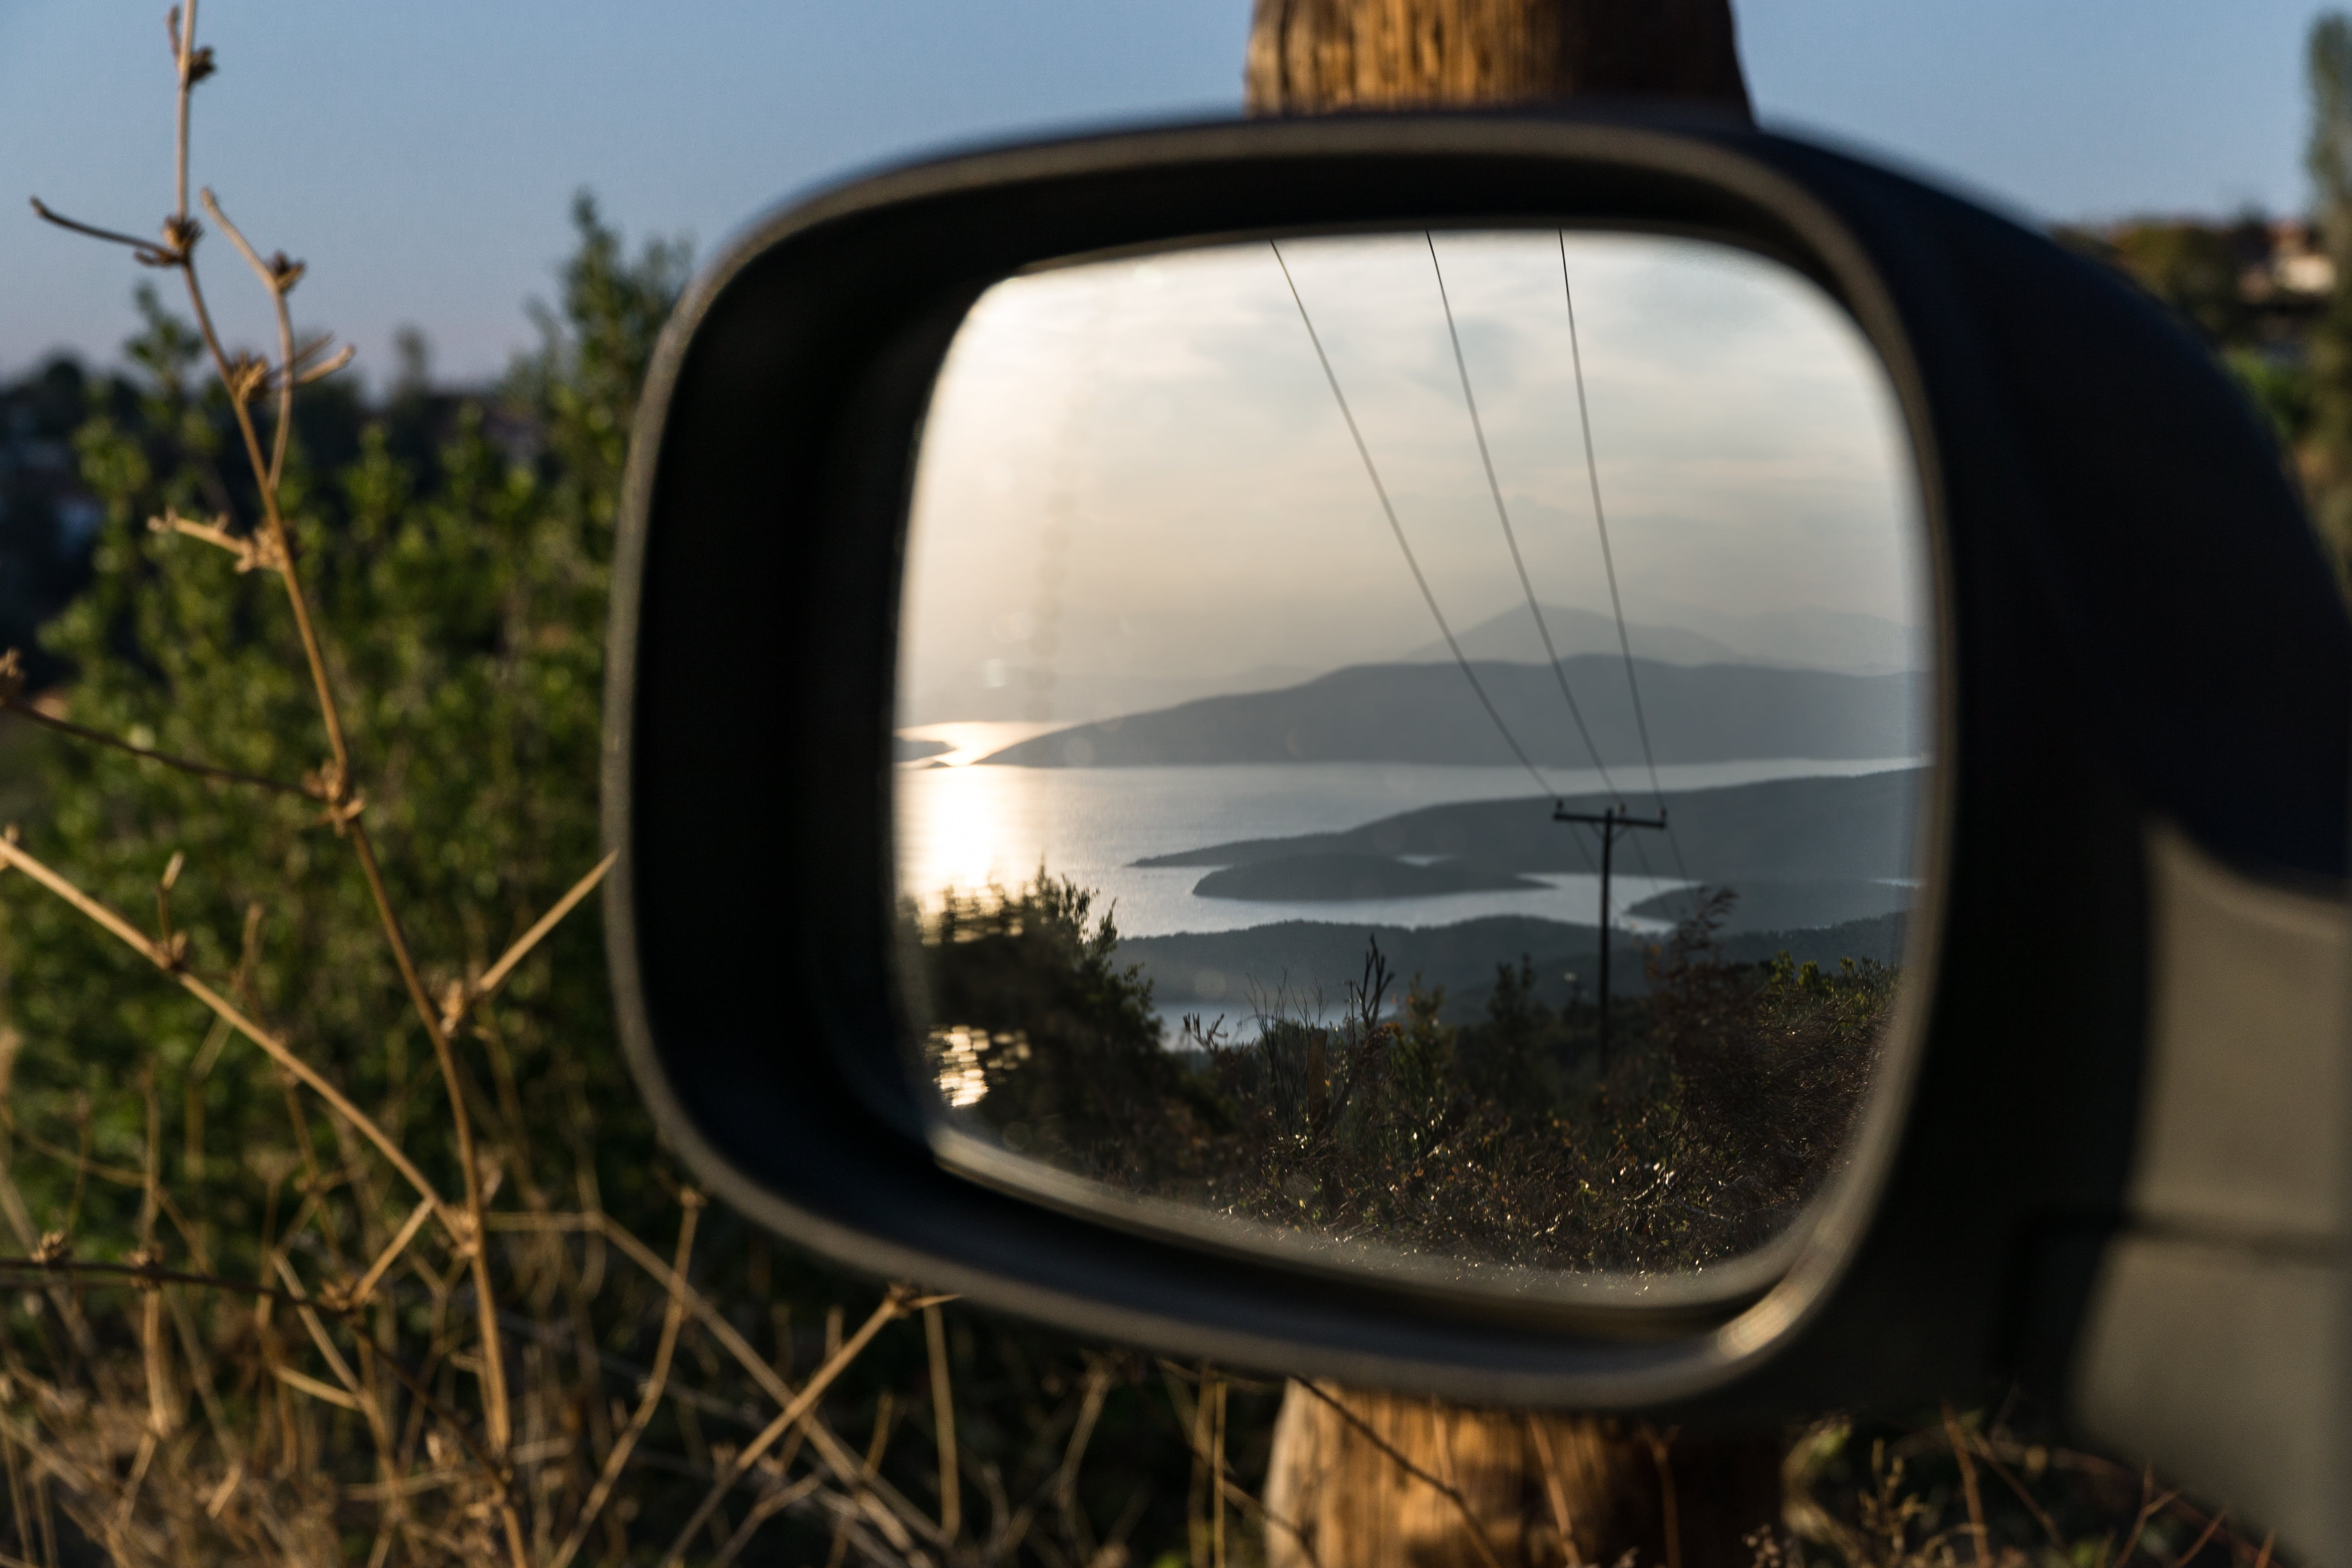 Shallow Focus Photography of Car Wing Mirror